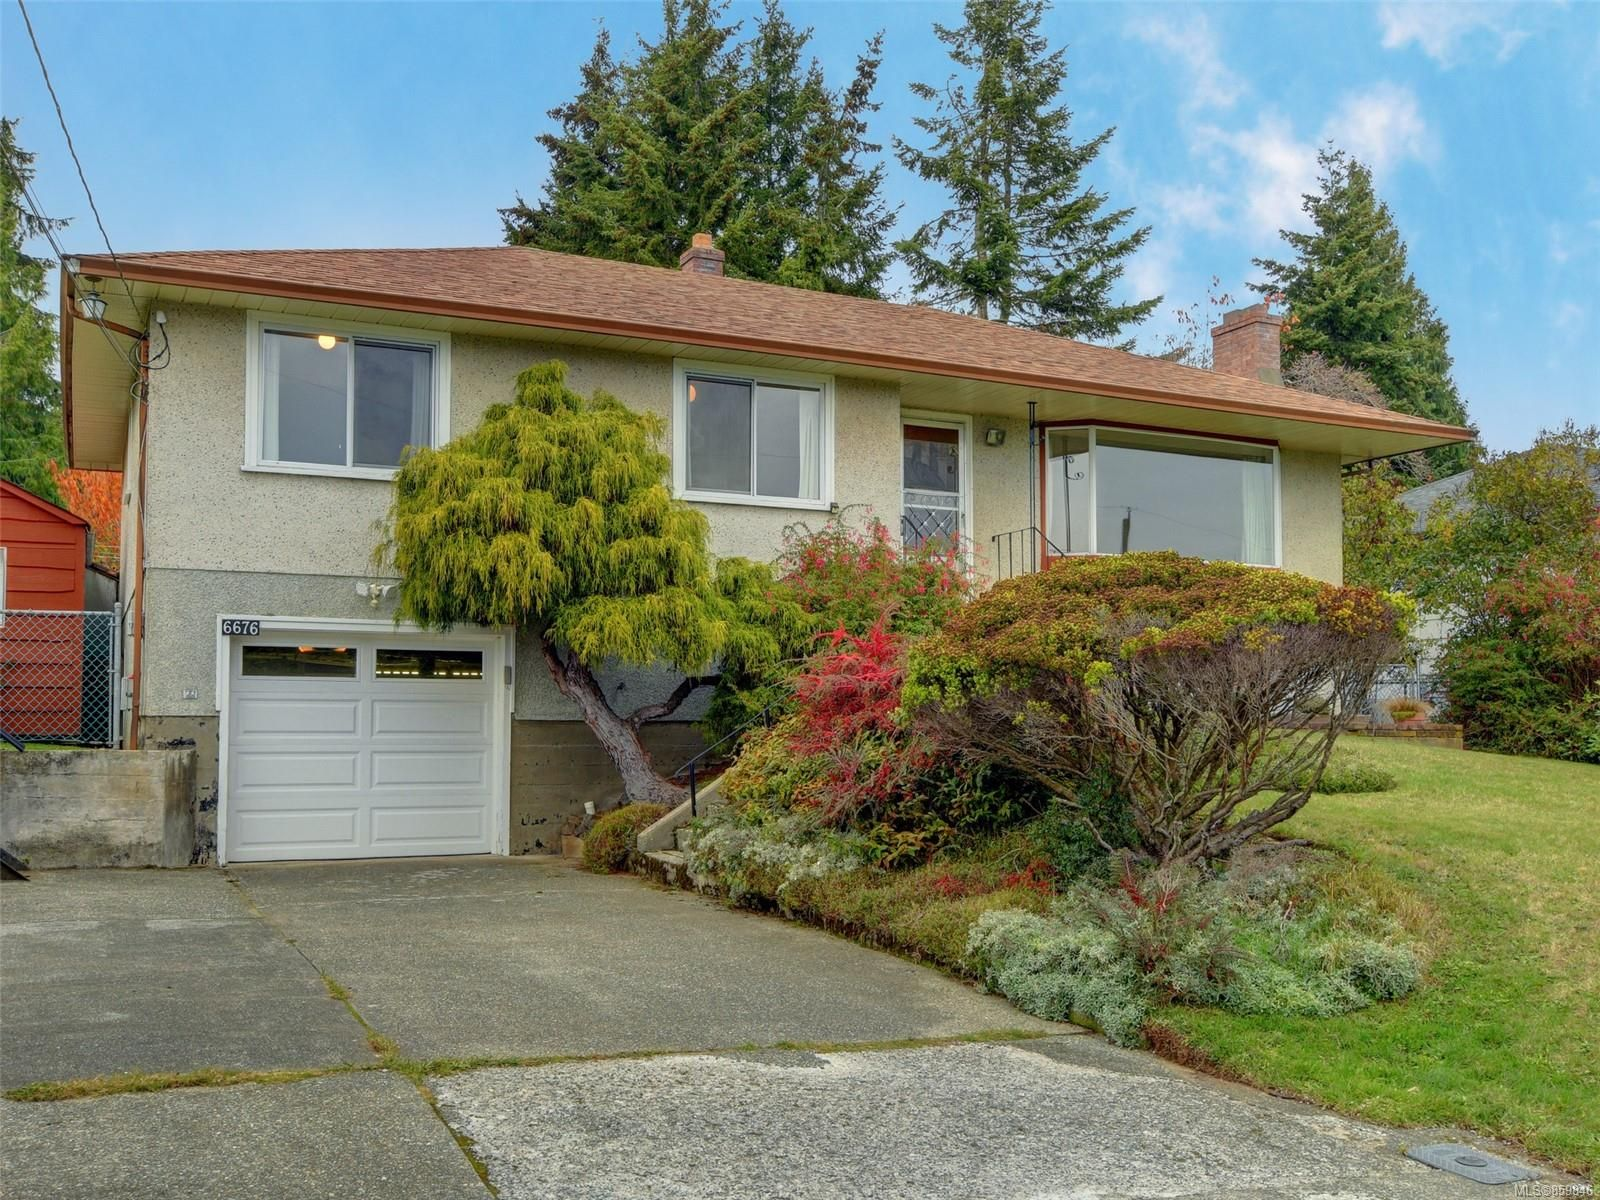 Main Photo: 6676 Goodmere Rd in : Sk Sooke Vill Core House for sale (Sooke)  : MLS®# 859846